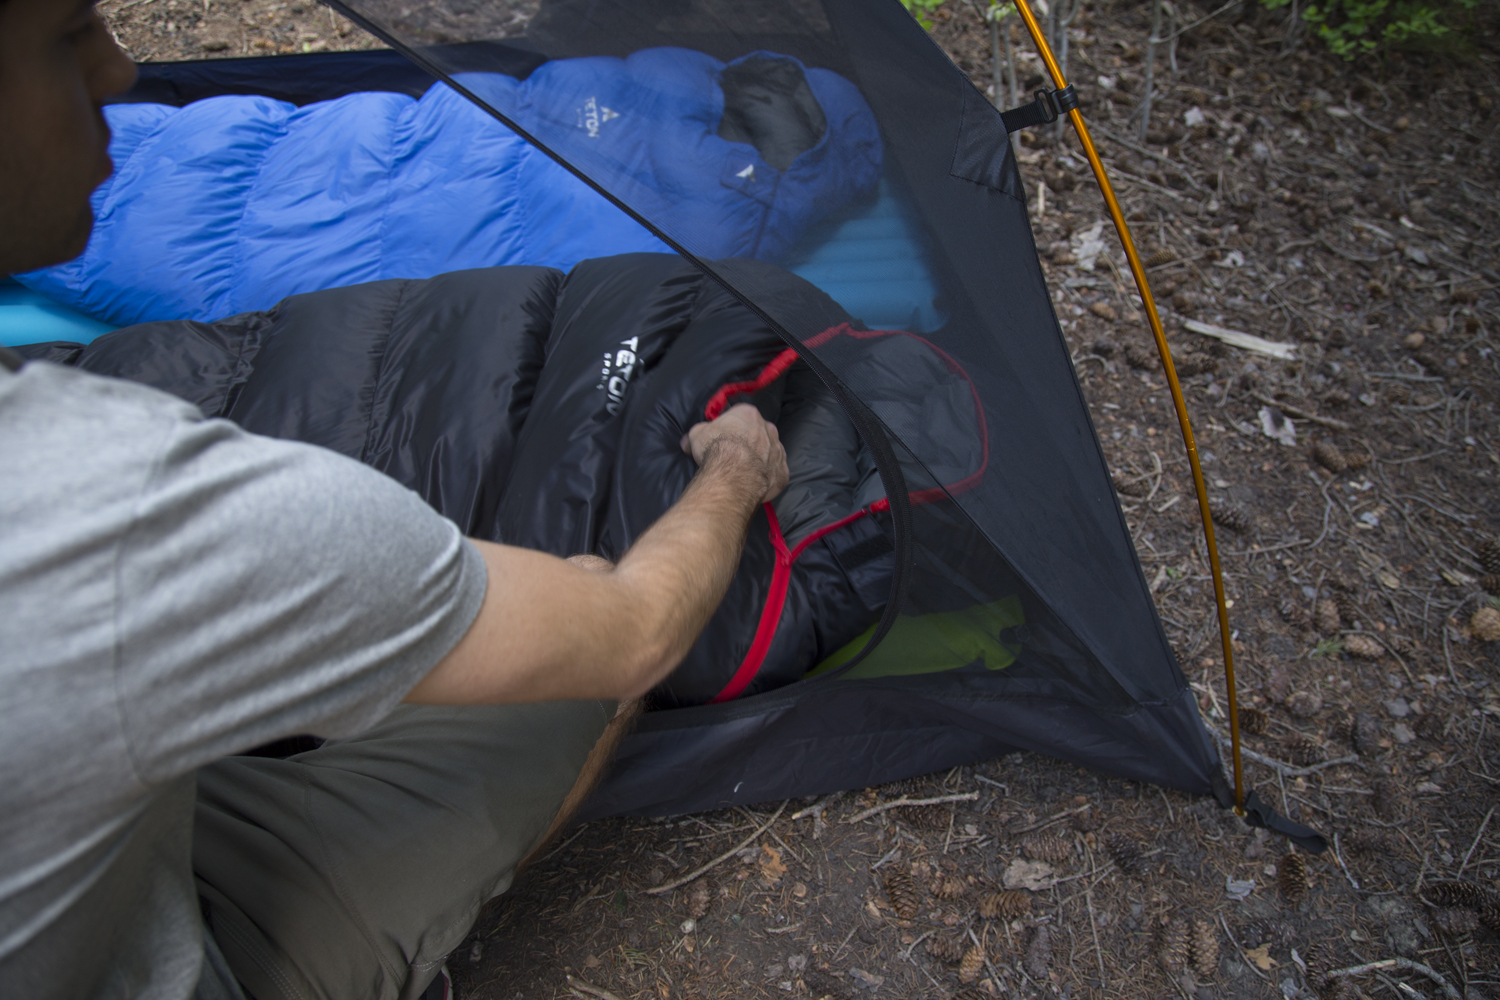 The Altos 0 is a workhouse bag that performs and lasts well after multiple nights and multiple uses.